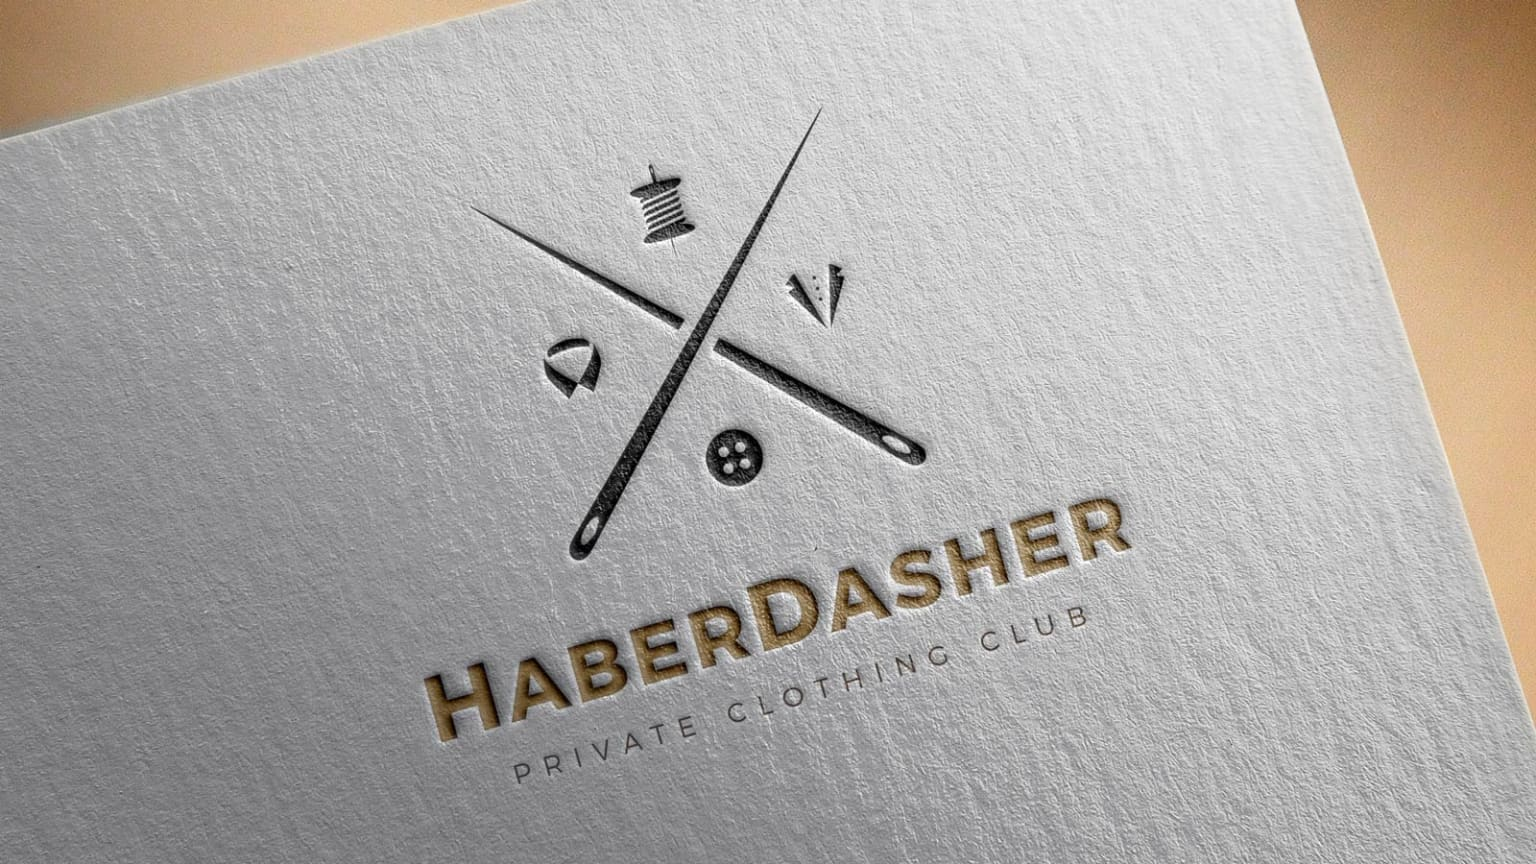 HaberDasher Private Clothing Club Brand Identity